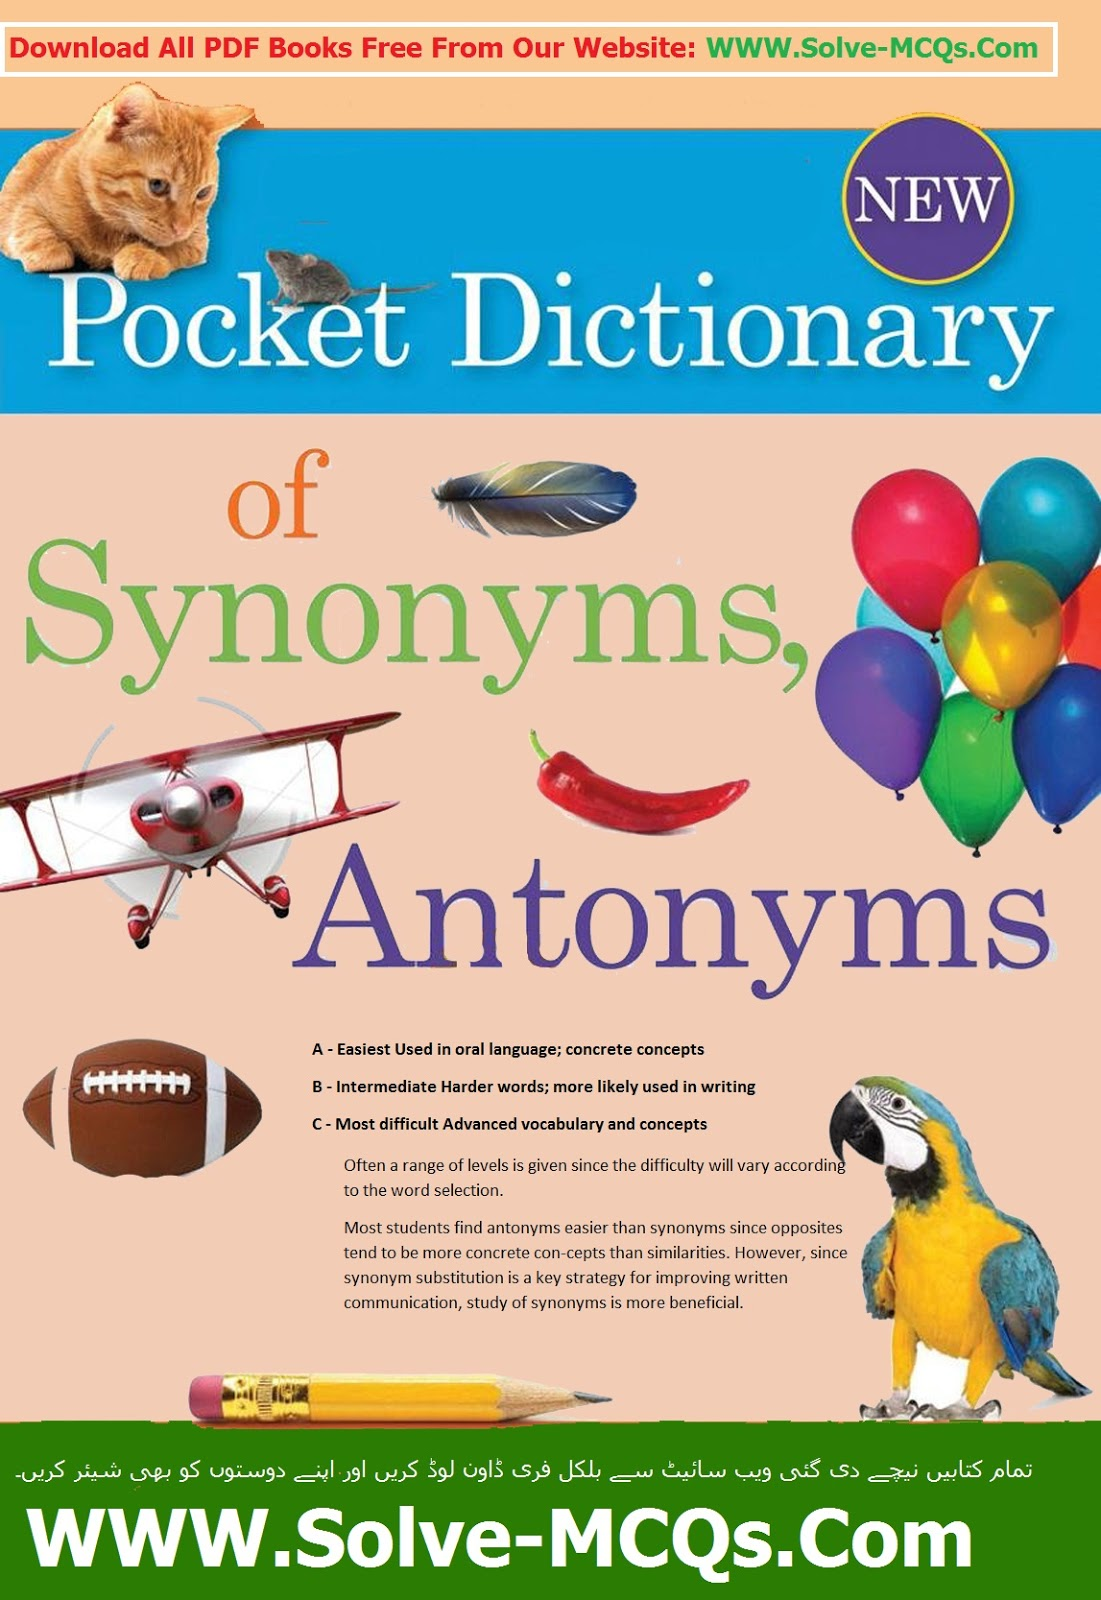 Synonyms And Antonyms Competitive Exam PDF Book - Solve-MCQs